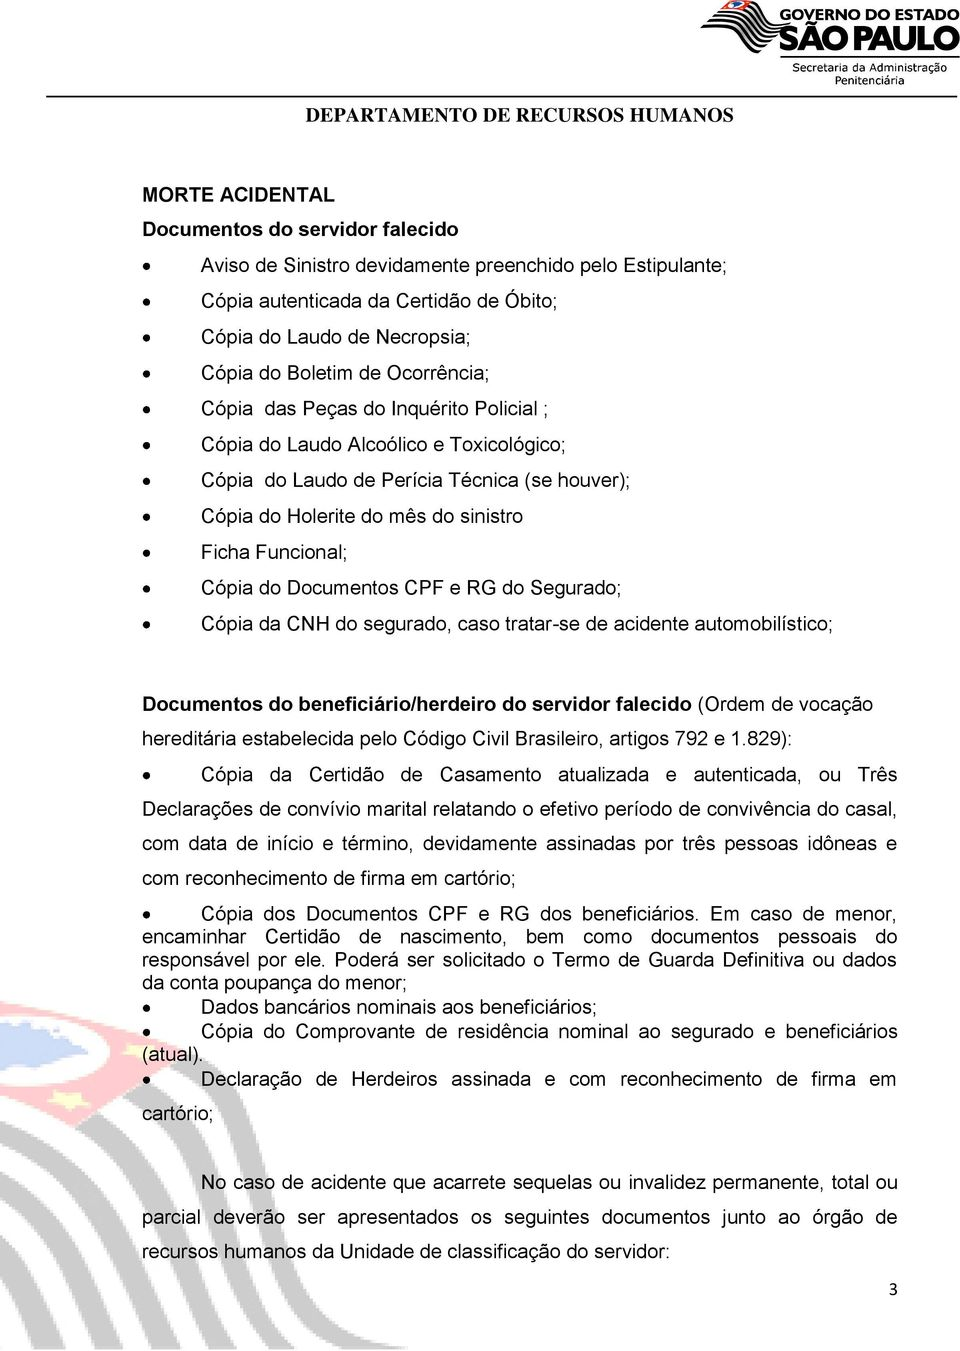 do Documentos CPF e RG do Segurado; Cópia da CNH do segurado, caso tratar-se de acidente automobilístico; Documentos do beneficiário/herdeiro do servidor falecido (Ordem de vocação hereditária